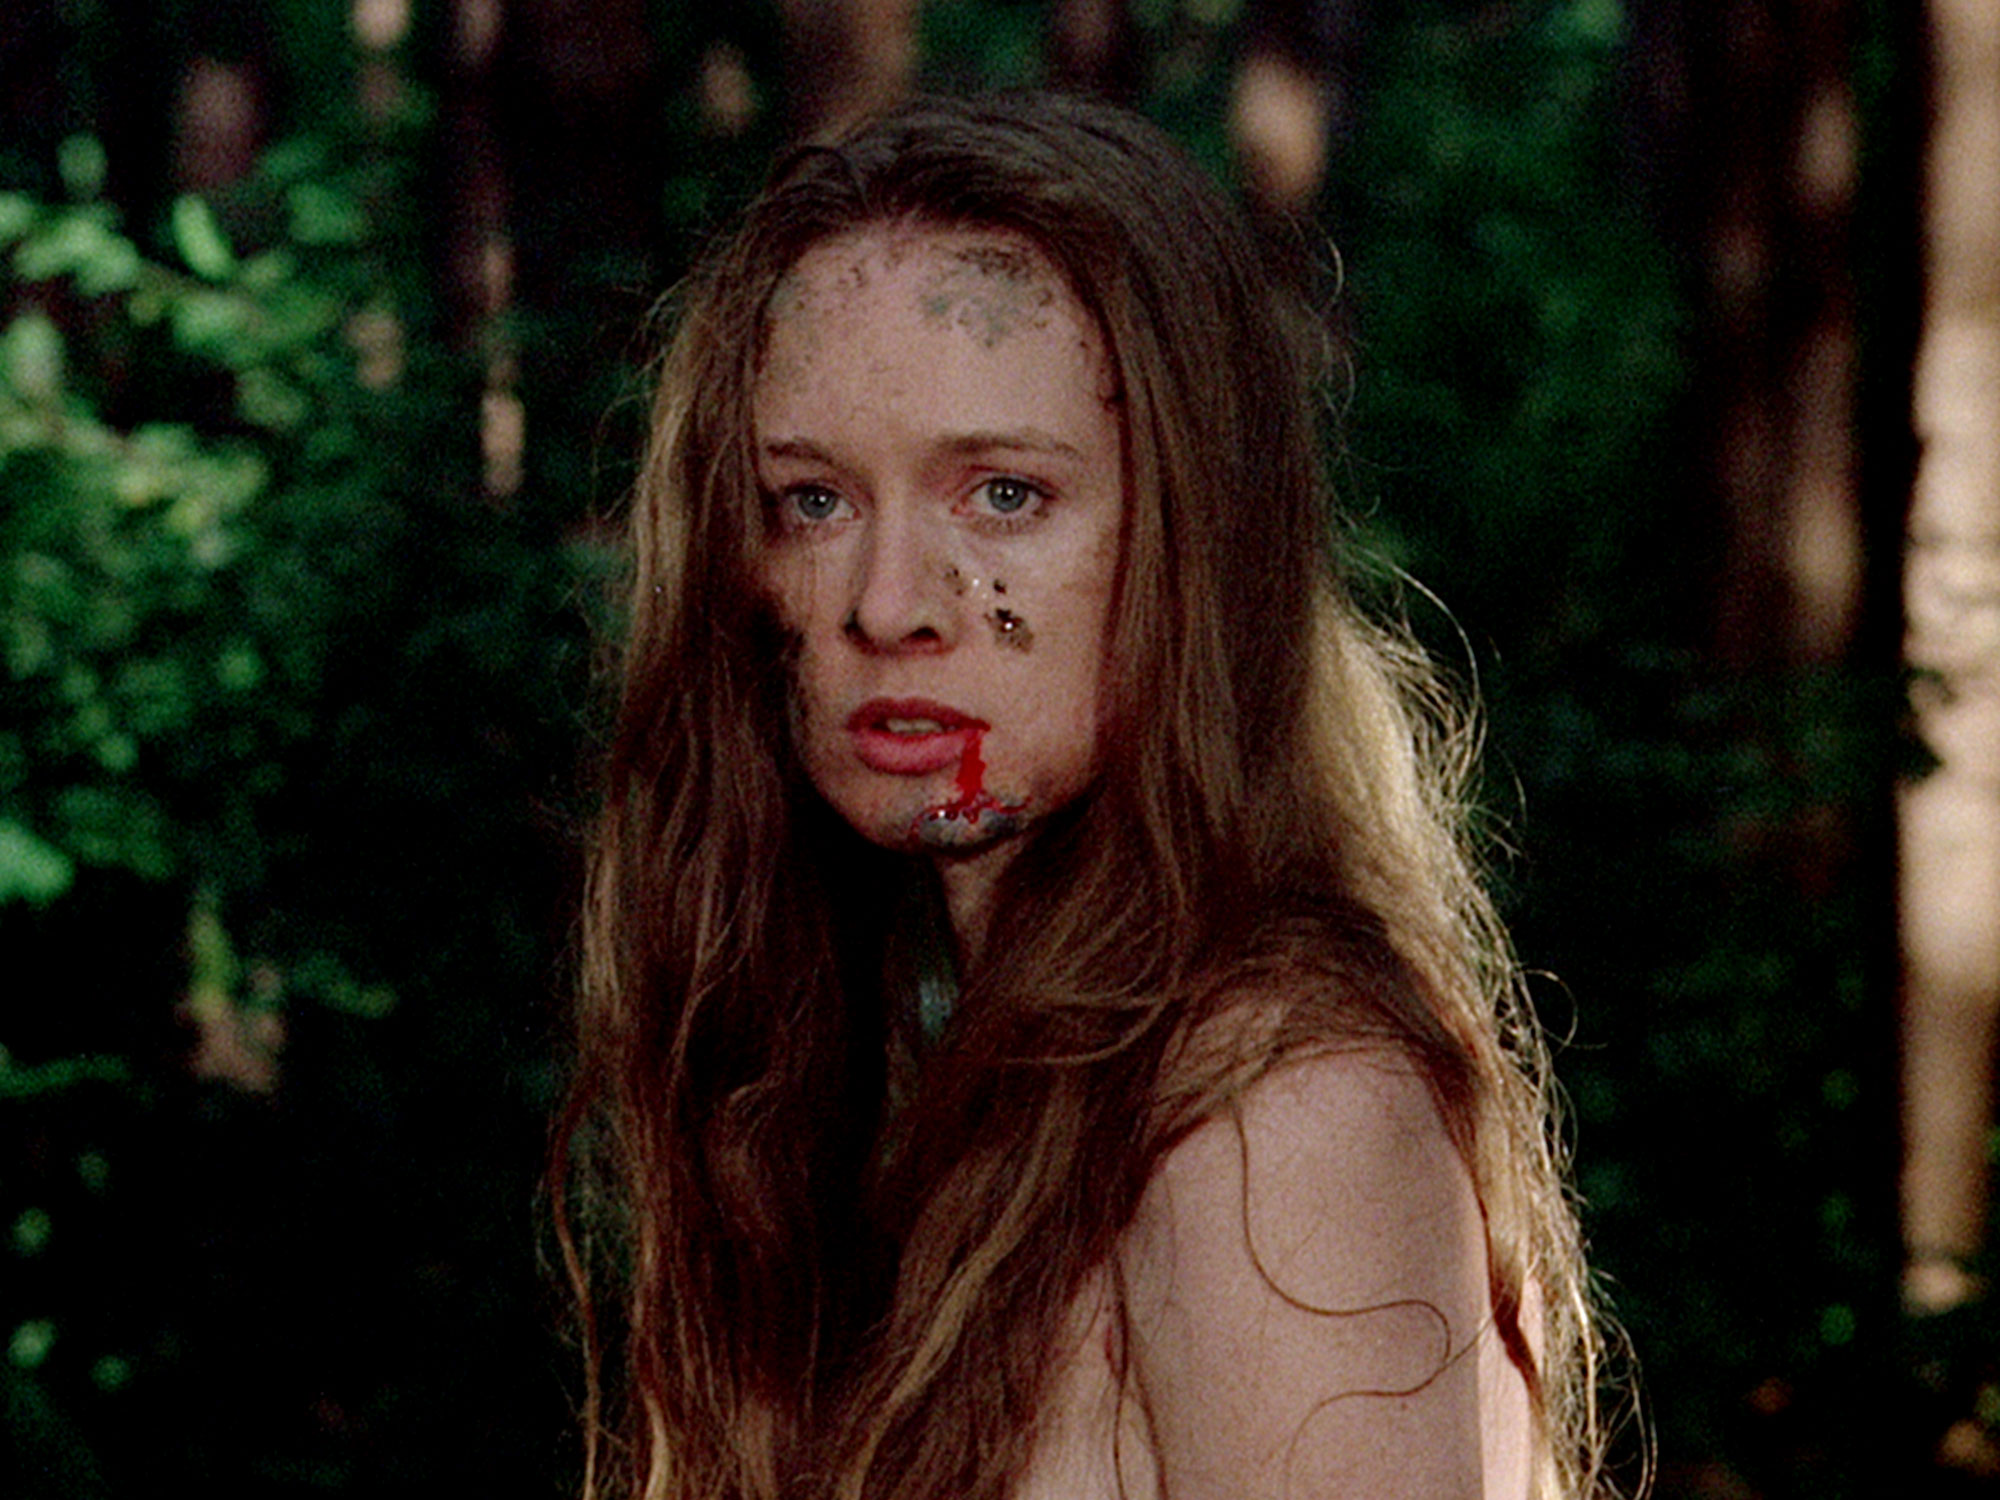 Camille Keaton in I Spit on Your Grave (1978)